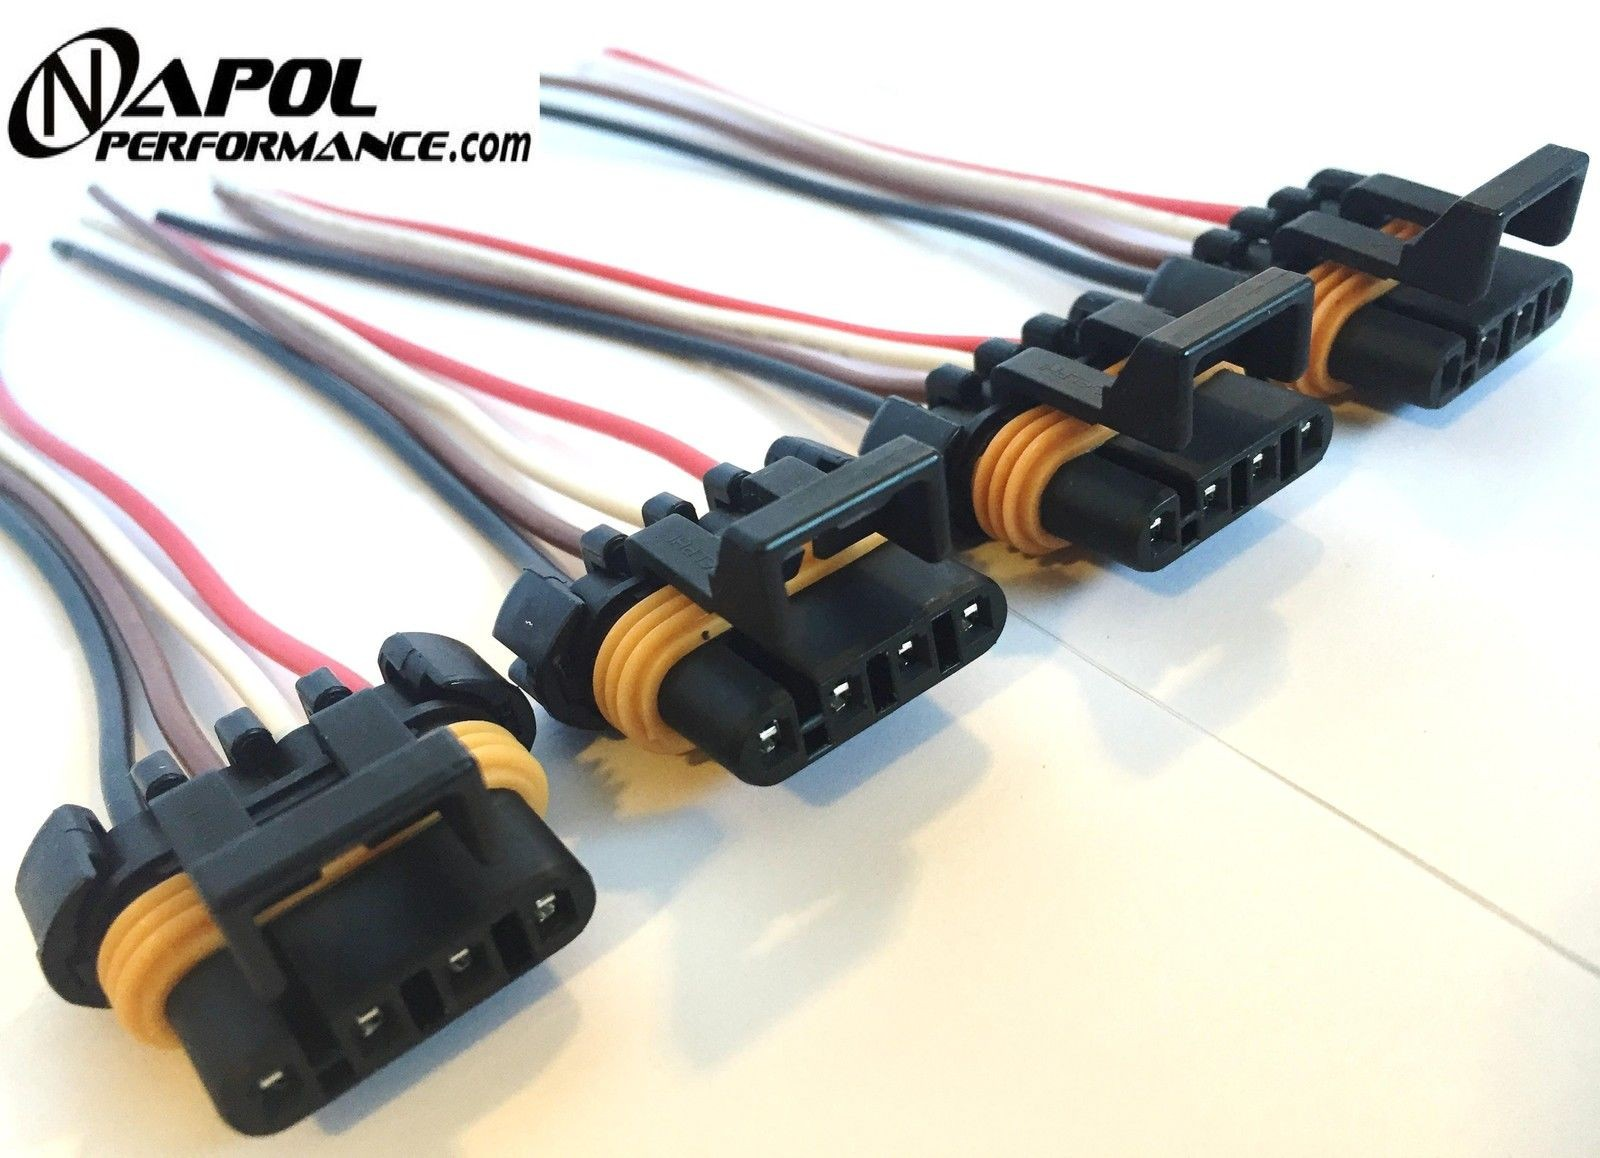 4 x ls1 ls6 ignition coil wiring harness pigtail connector gm camaro rh napolperformance com 65 Mustang Coil Wiring GM Ignition Coil Wiring Diagram